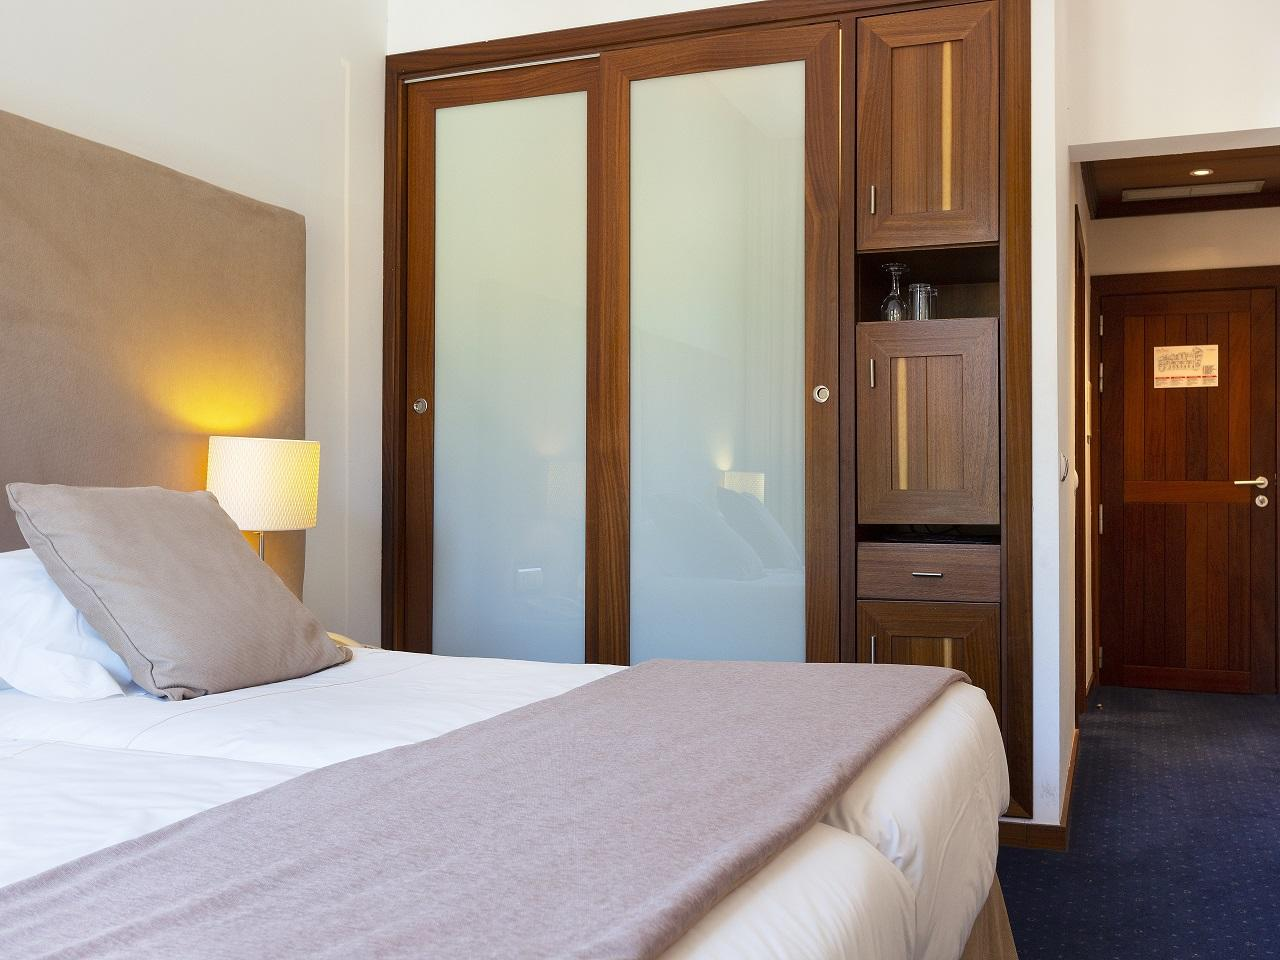 Executive double room at Gran Hotel Sóller in Sóller, Majorca